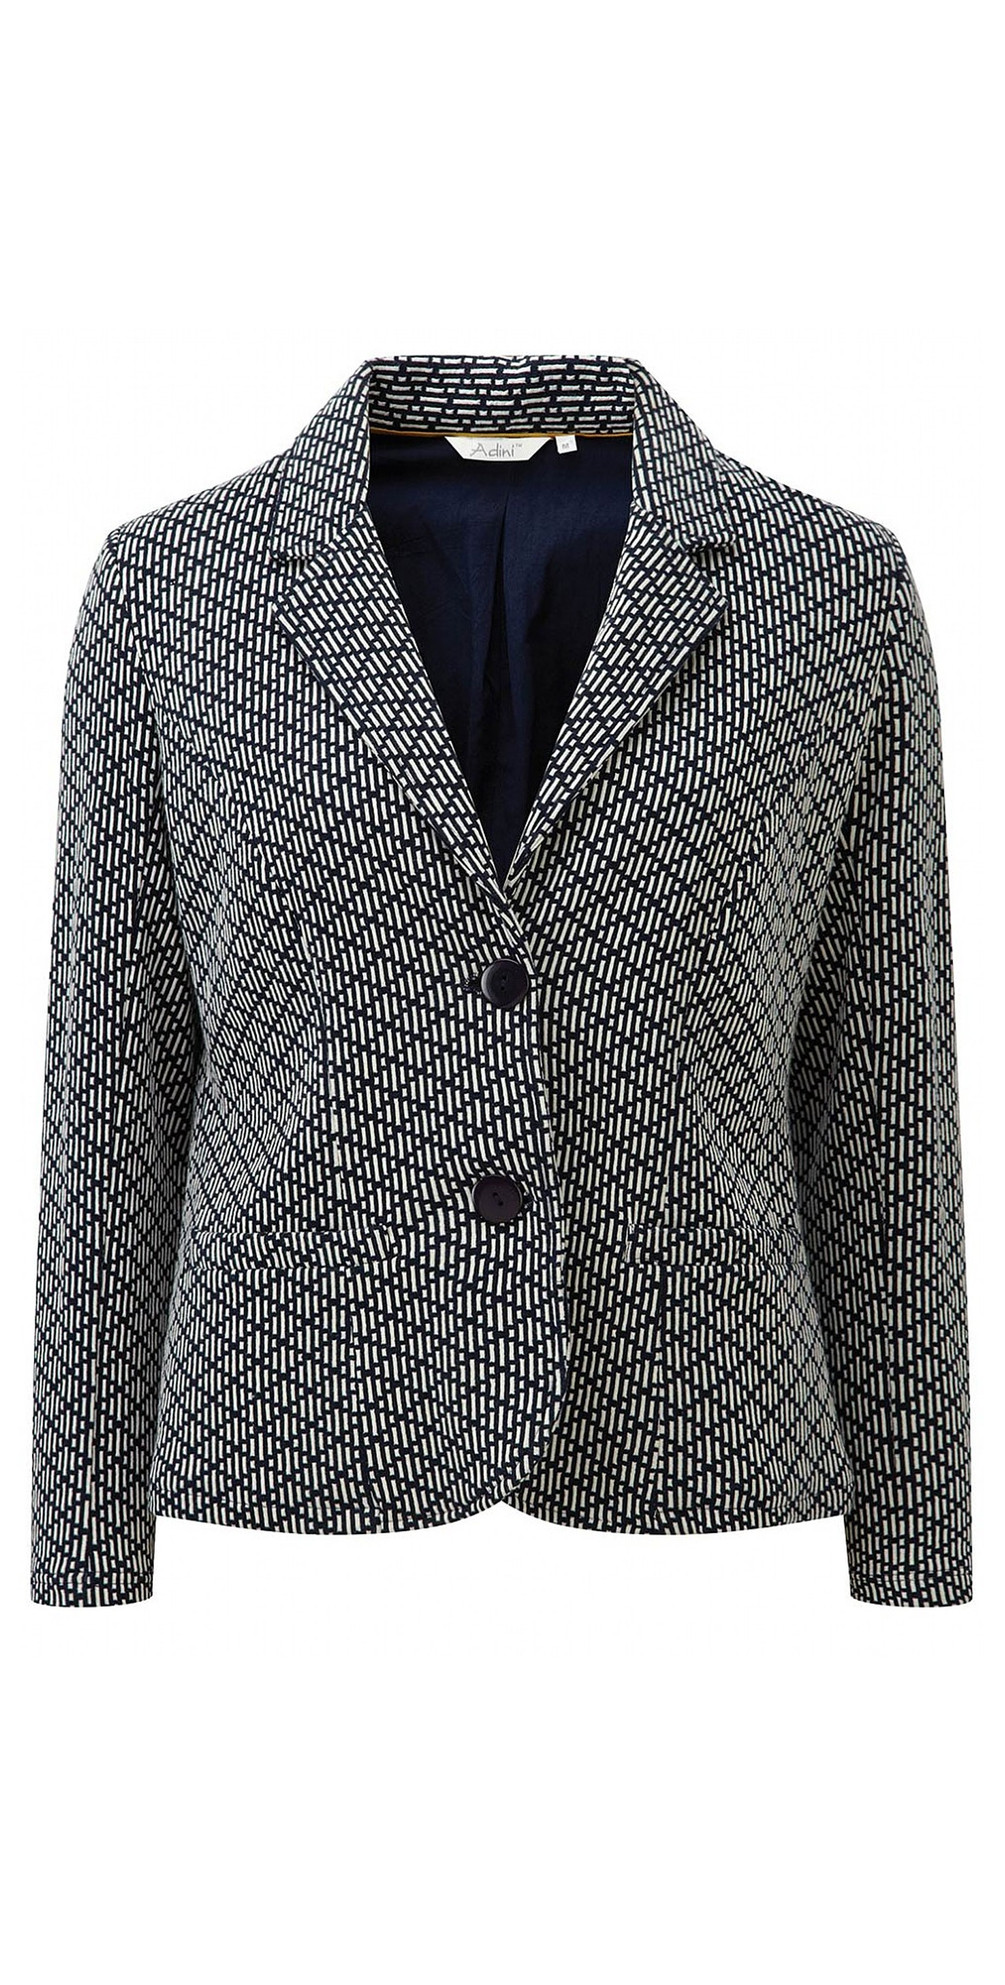 Brompton Weave Bury Jacket main image